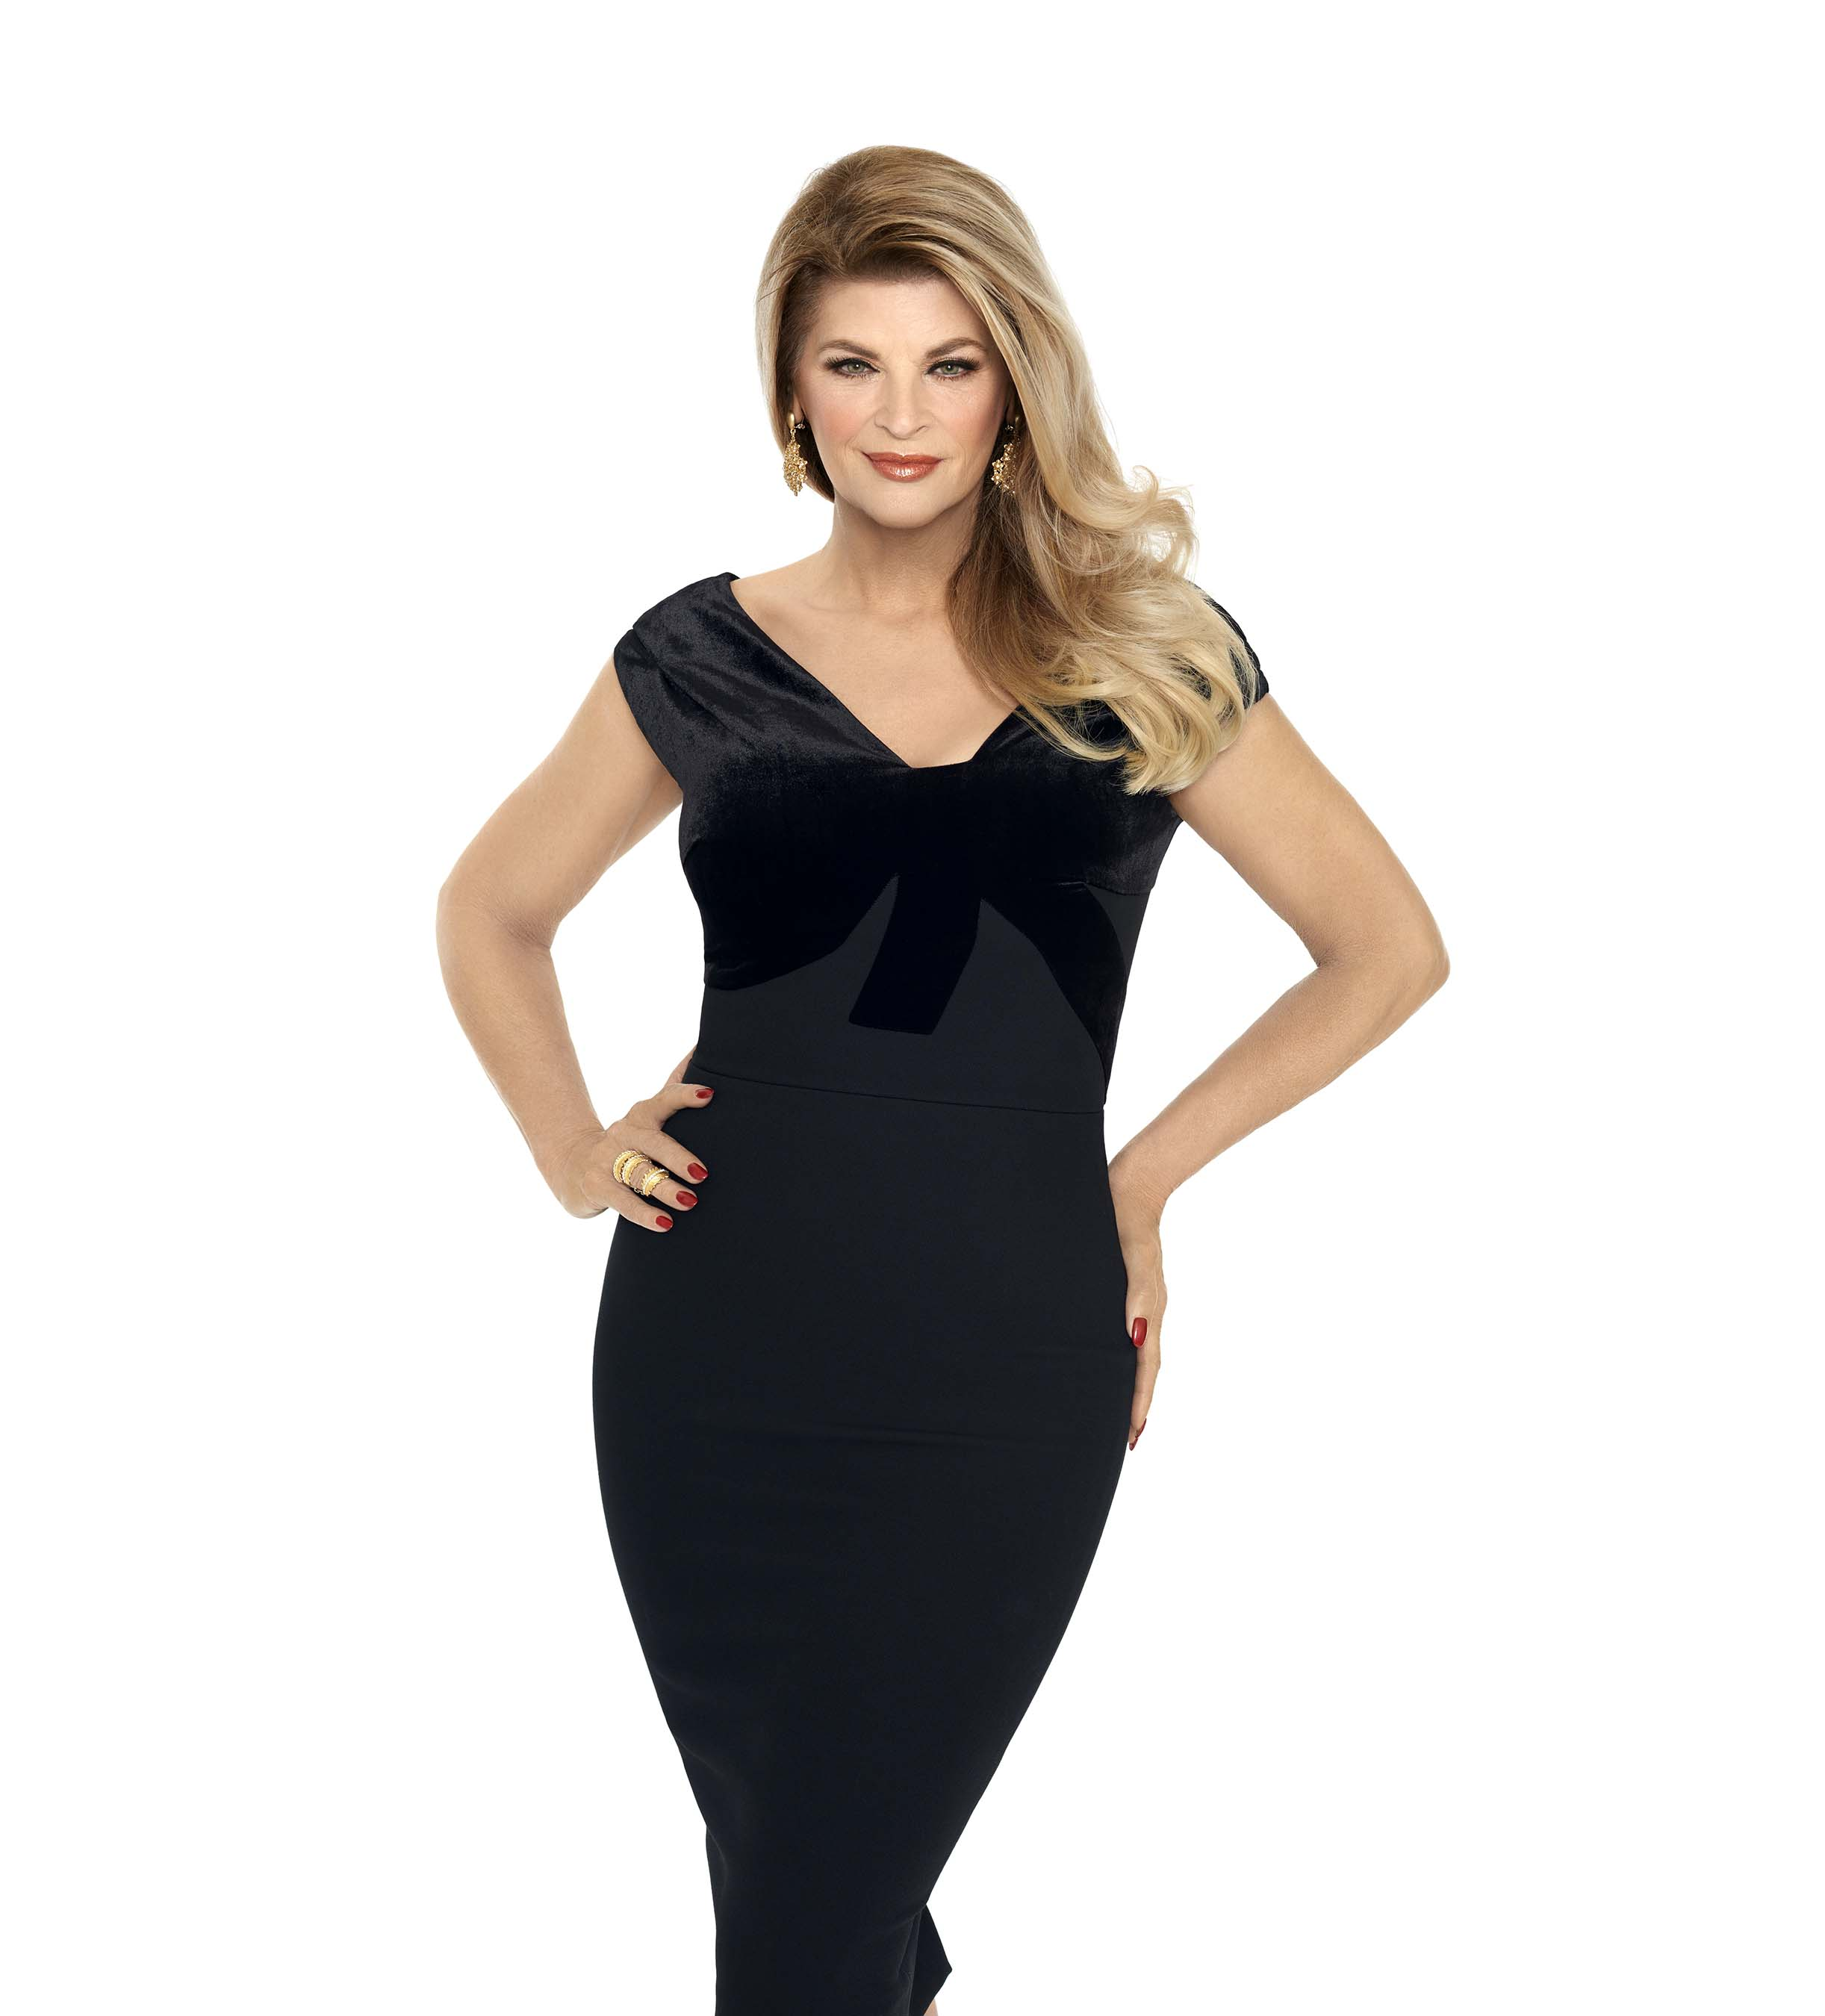 New Jenny Craig Campaign Reunites Spokeswoman Kirstie Alley with Cliff and Norm on 'Cheers' Set to Celebrate Her 50 lb. Weight Loss*